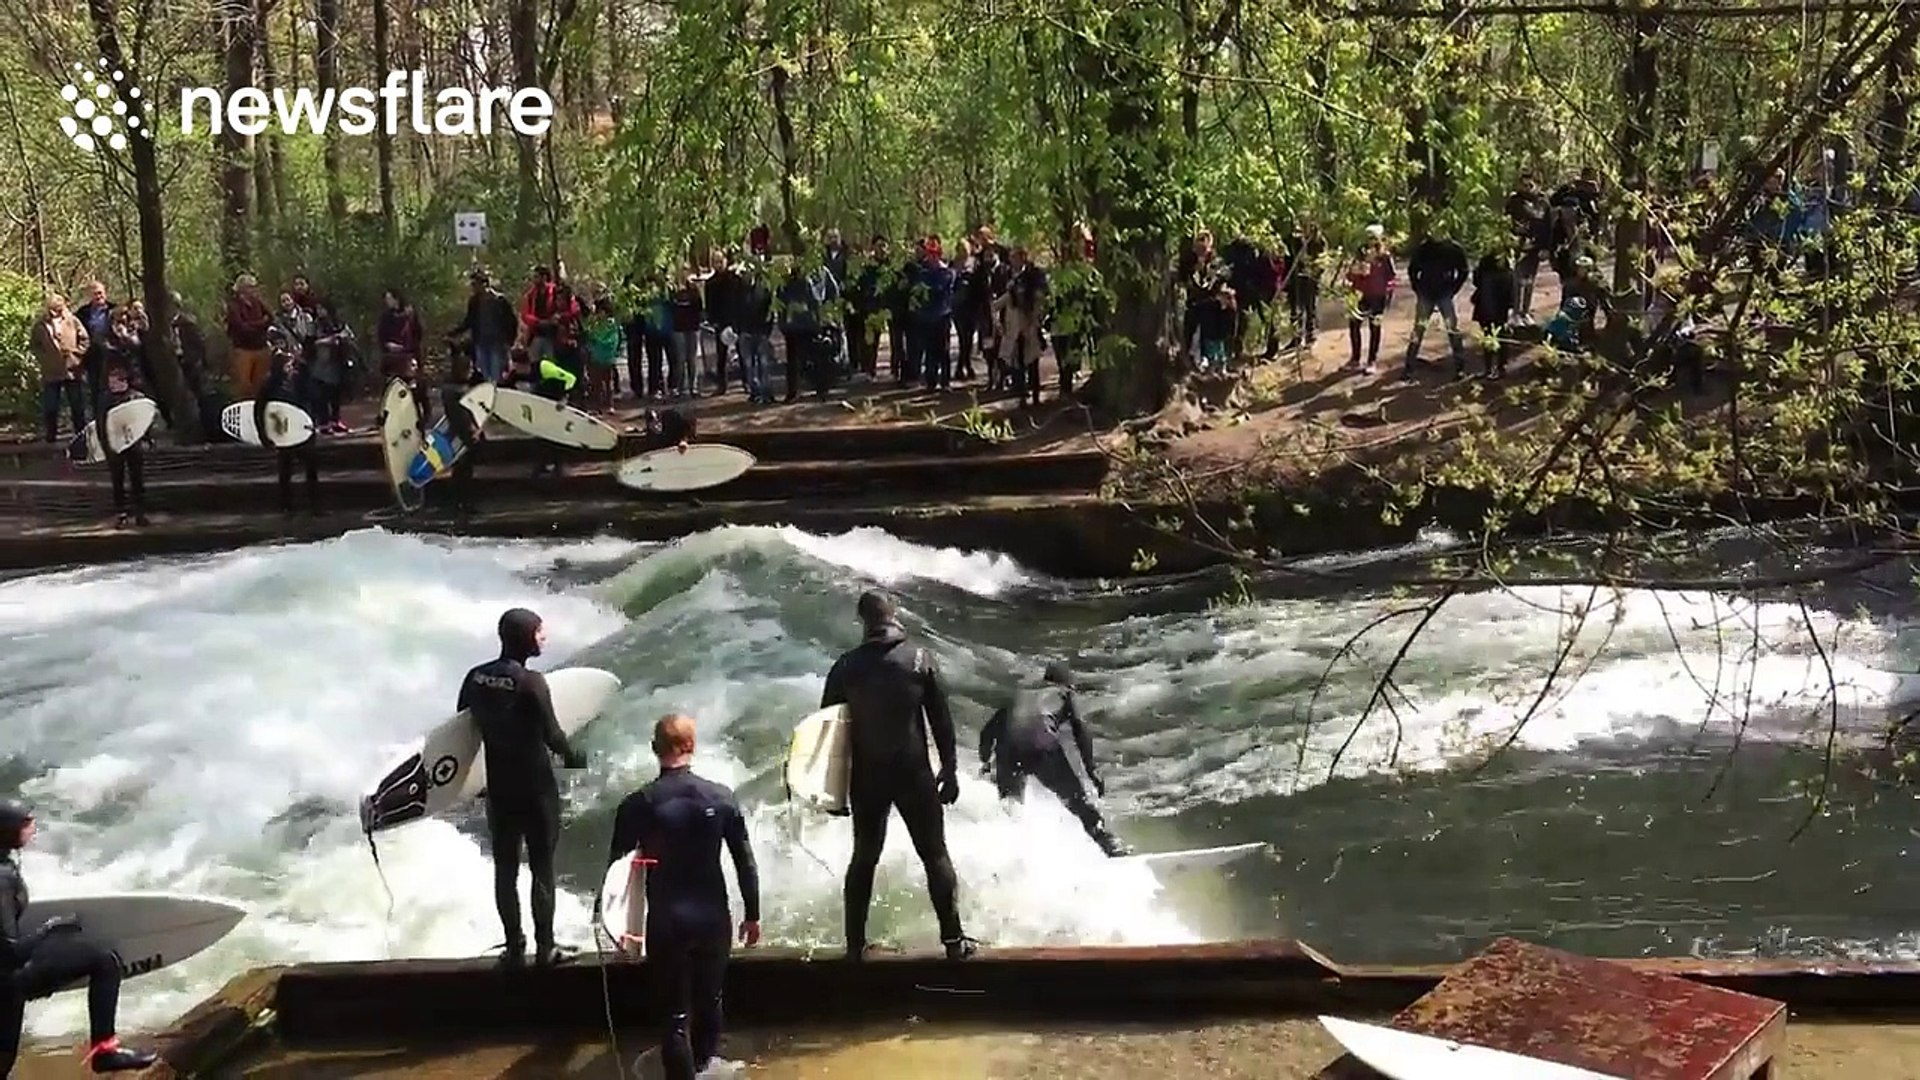 Surfers ride waves on river in Munich